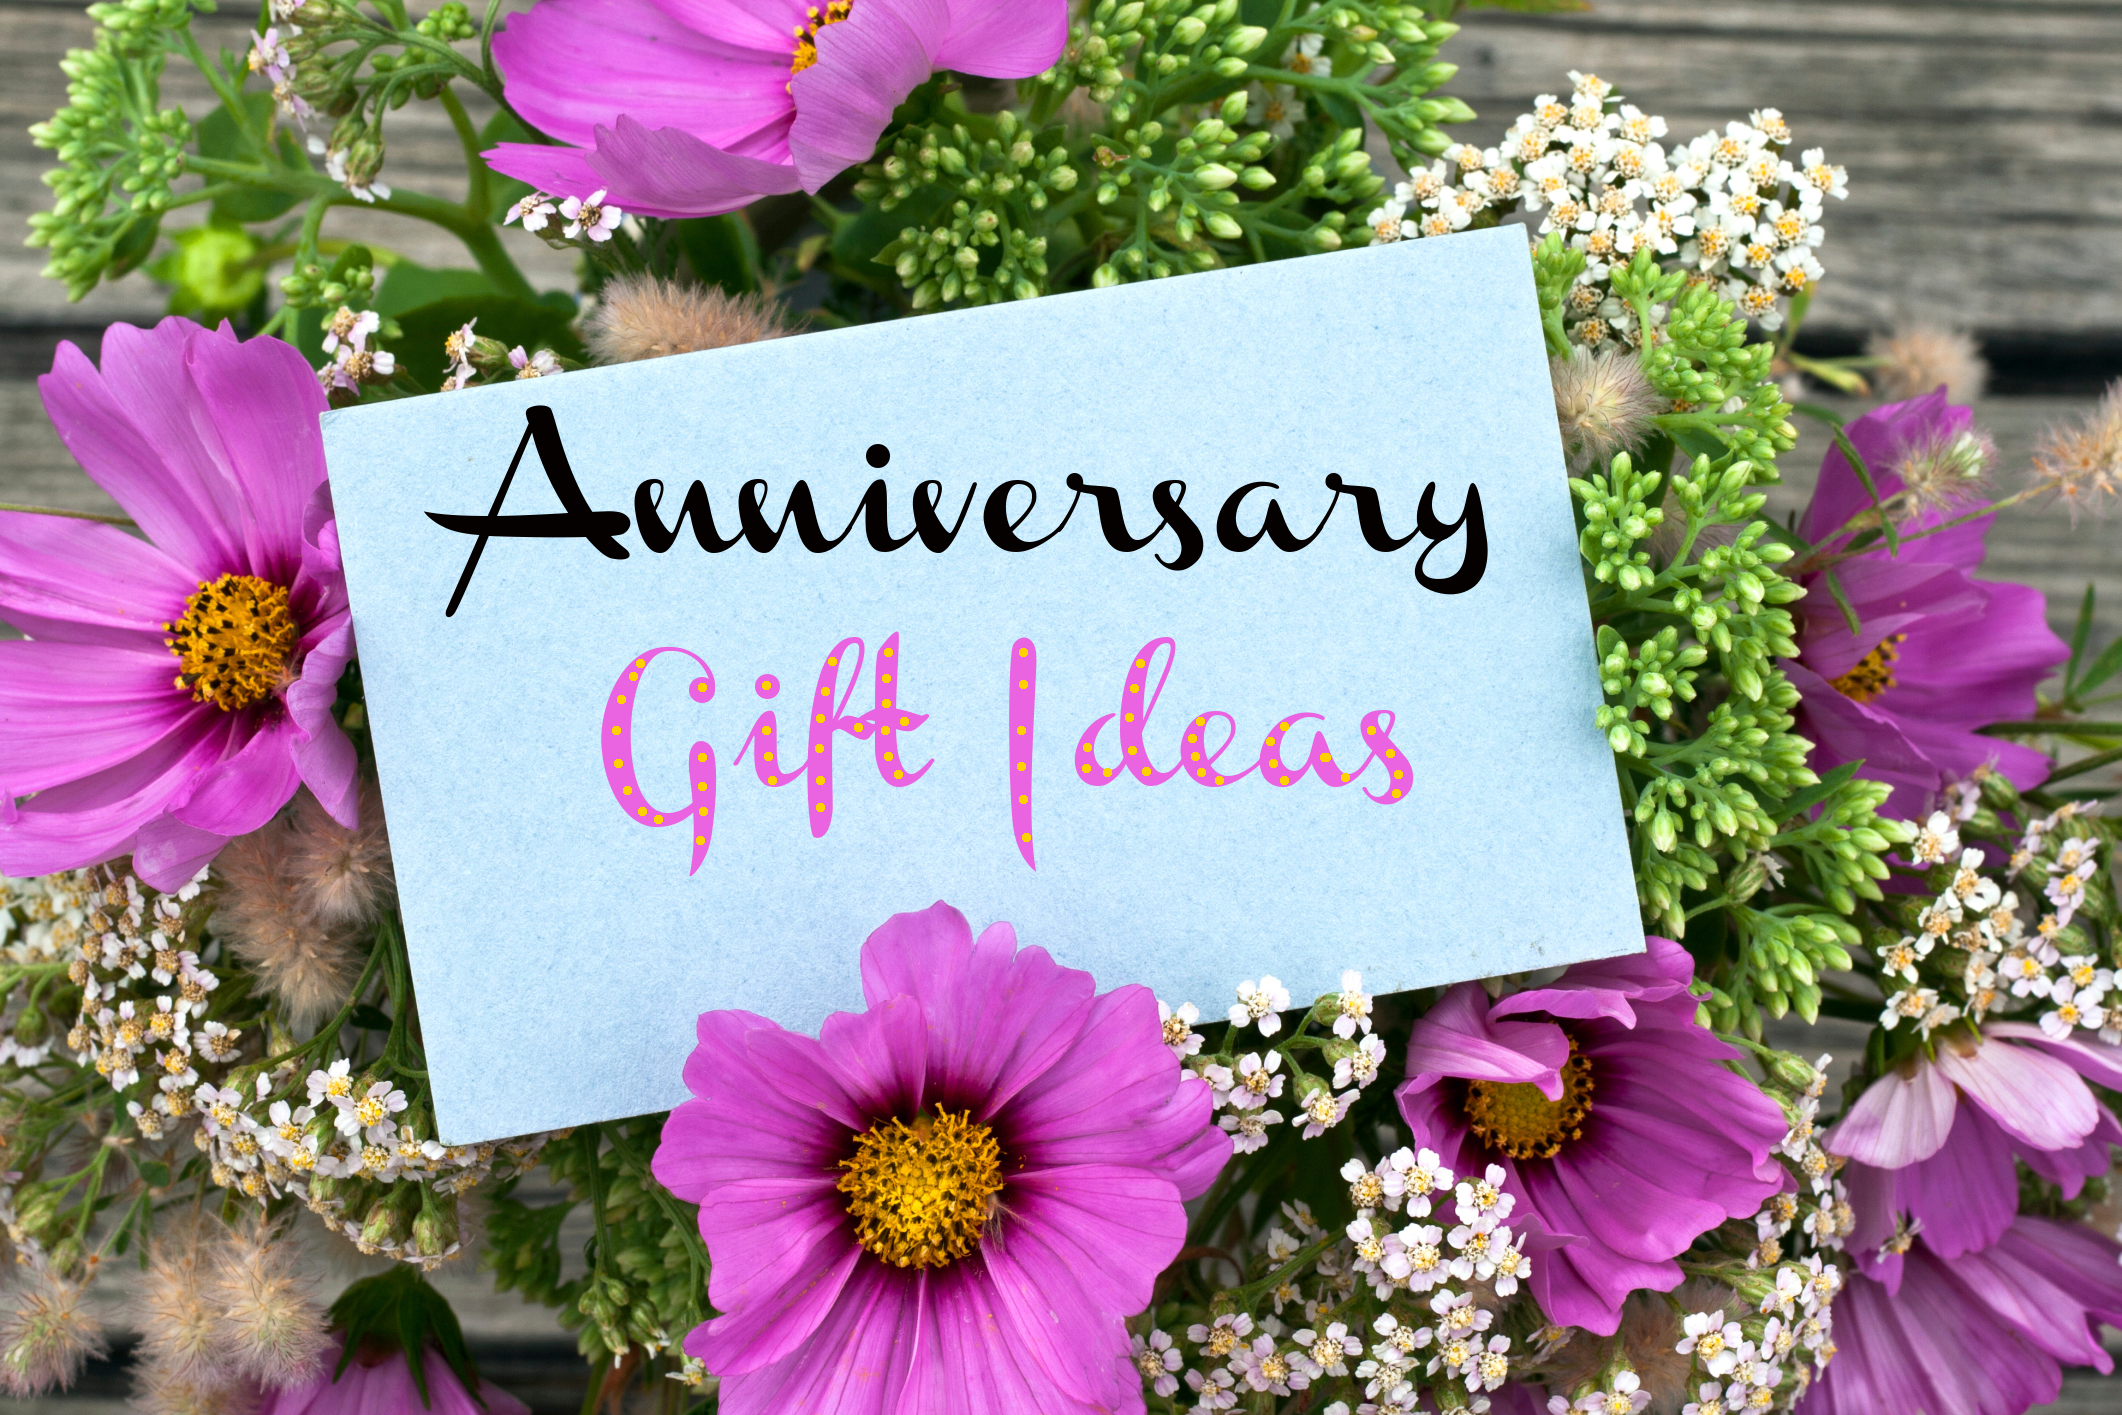 ... wedding anniversary gifts by year and pick the right one for him/her